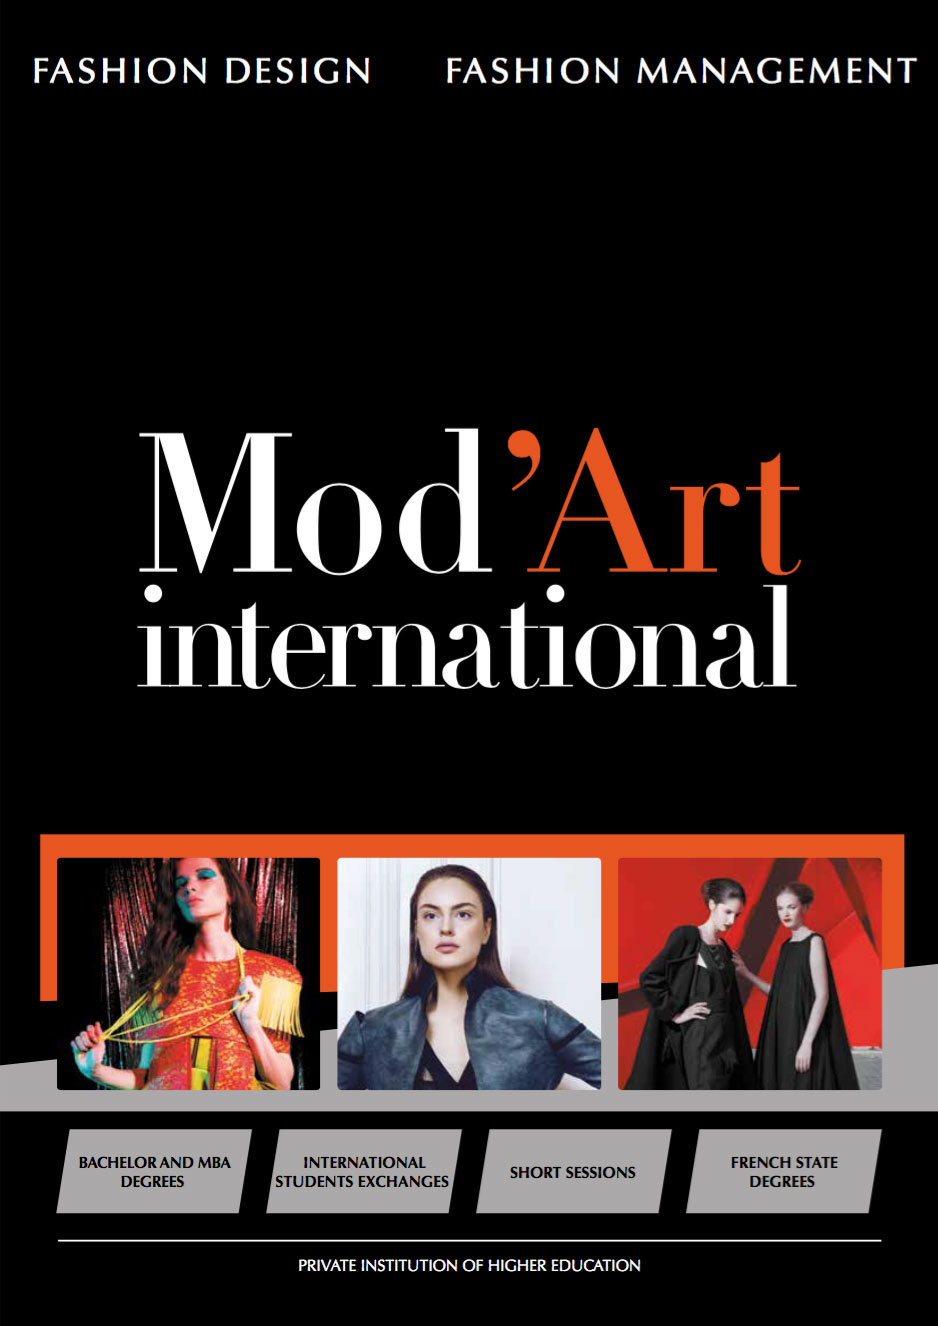 visuel_brochure_GB_modart_international